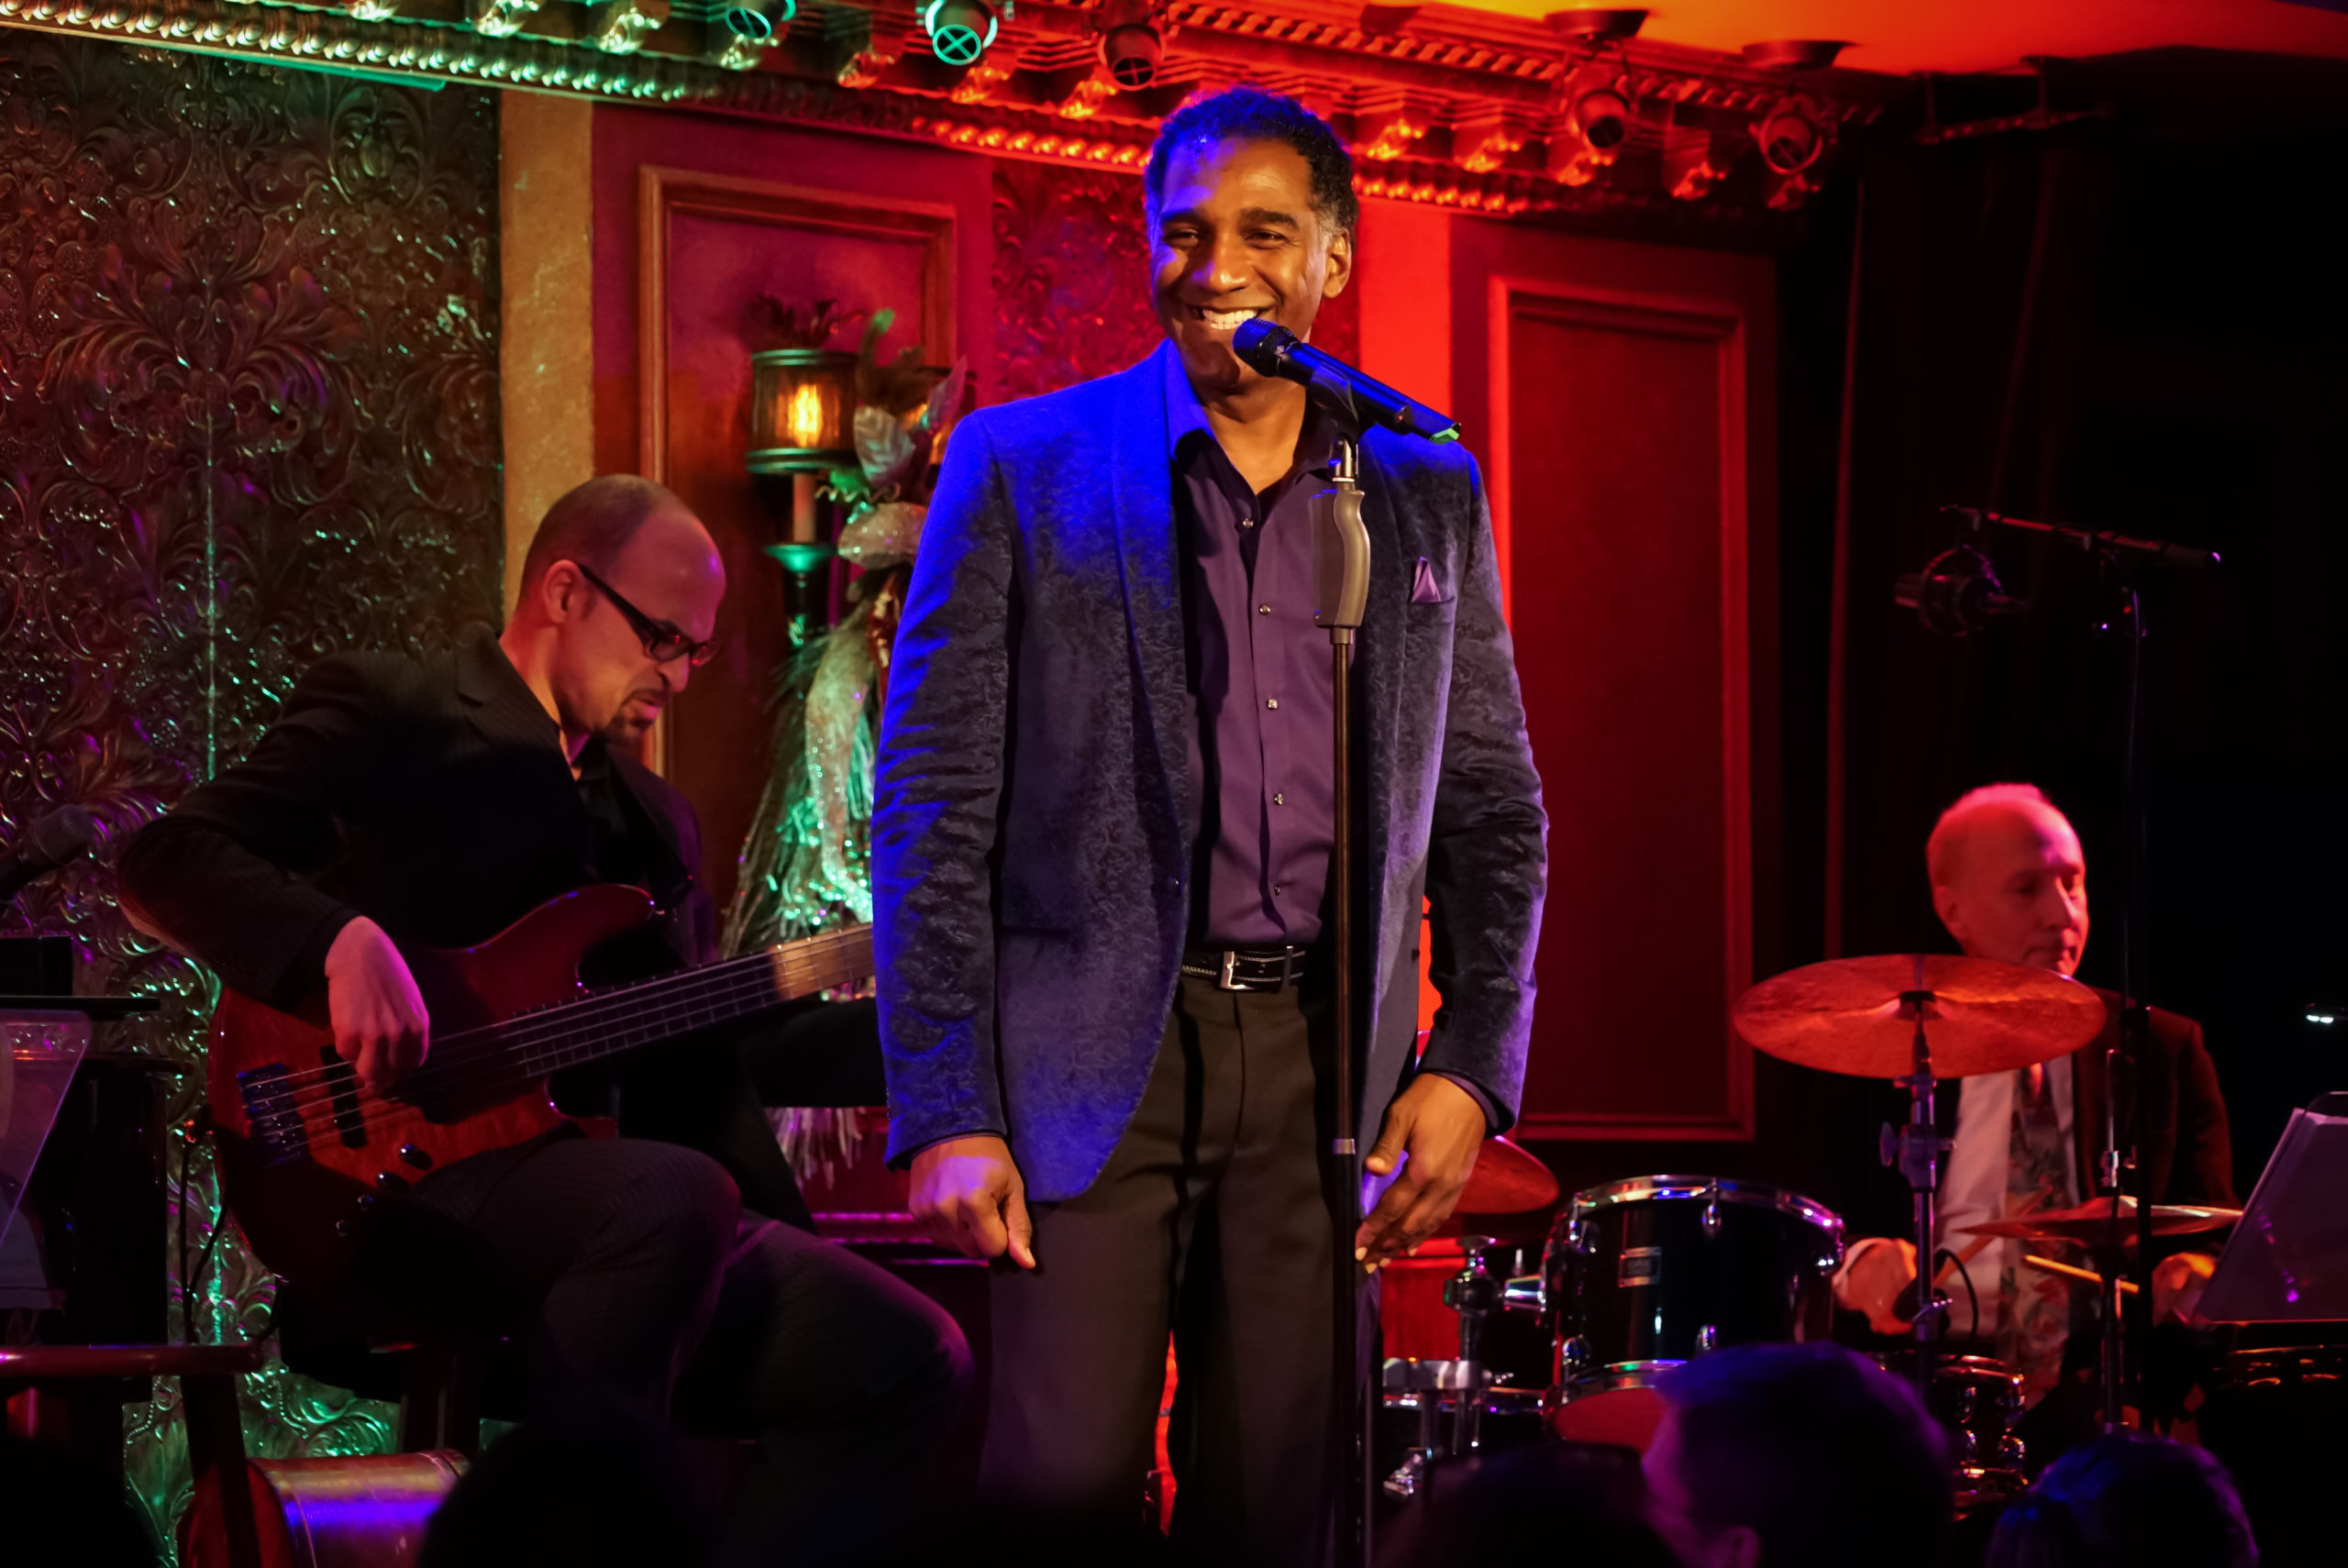 Who Is Bobby Lewis On Norm Lewis' Christmas Album 2021 In Concert With Norm Lewis 27 East